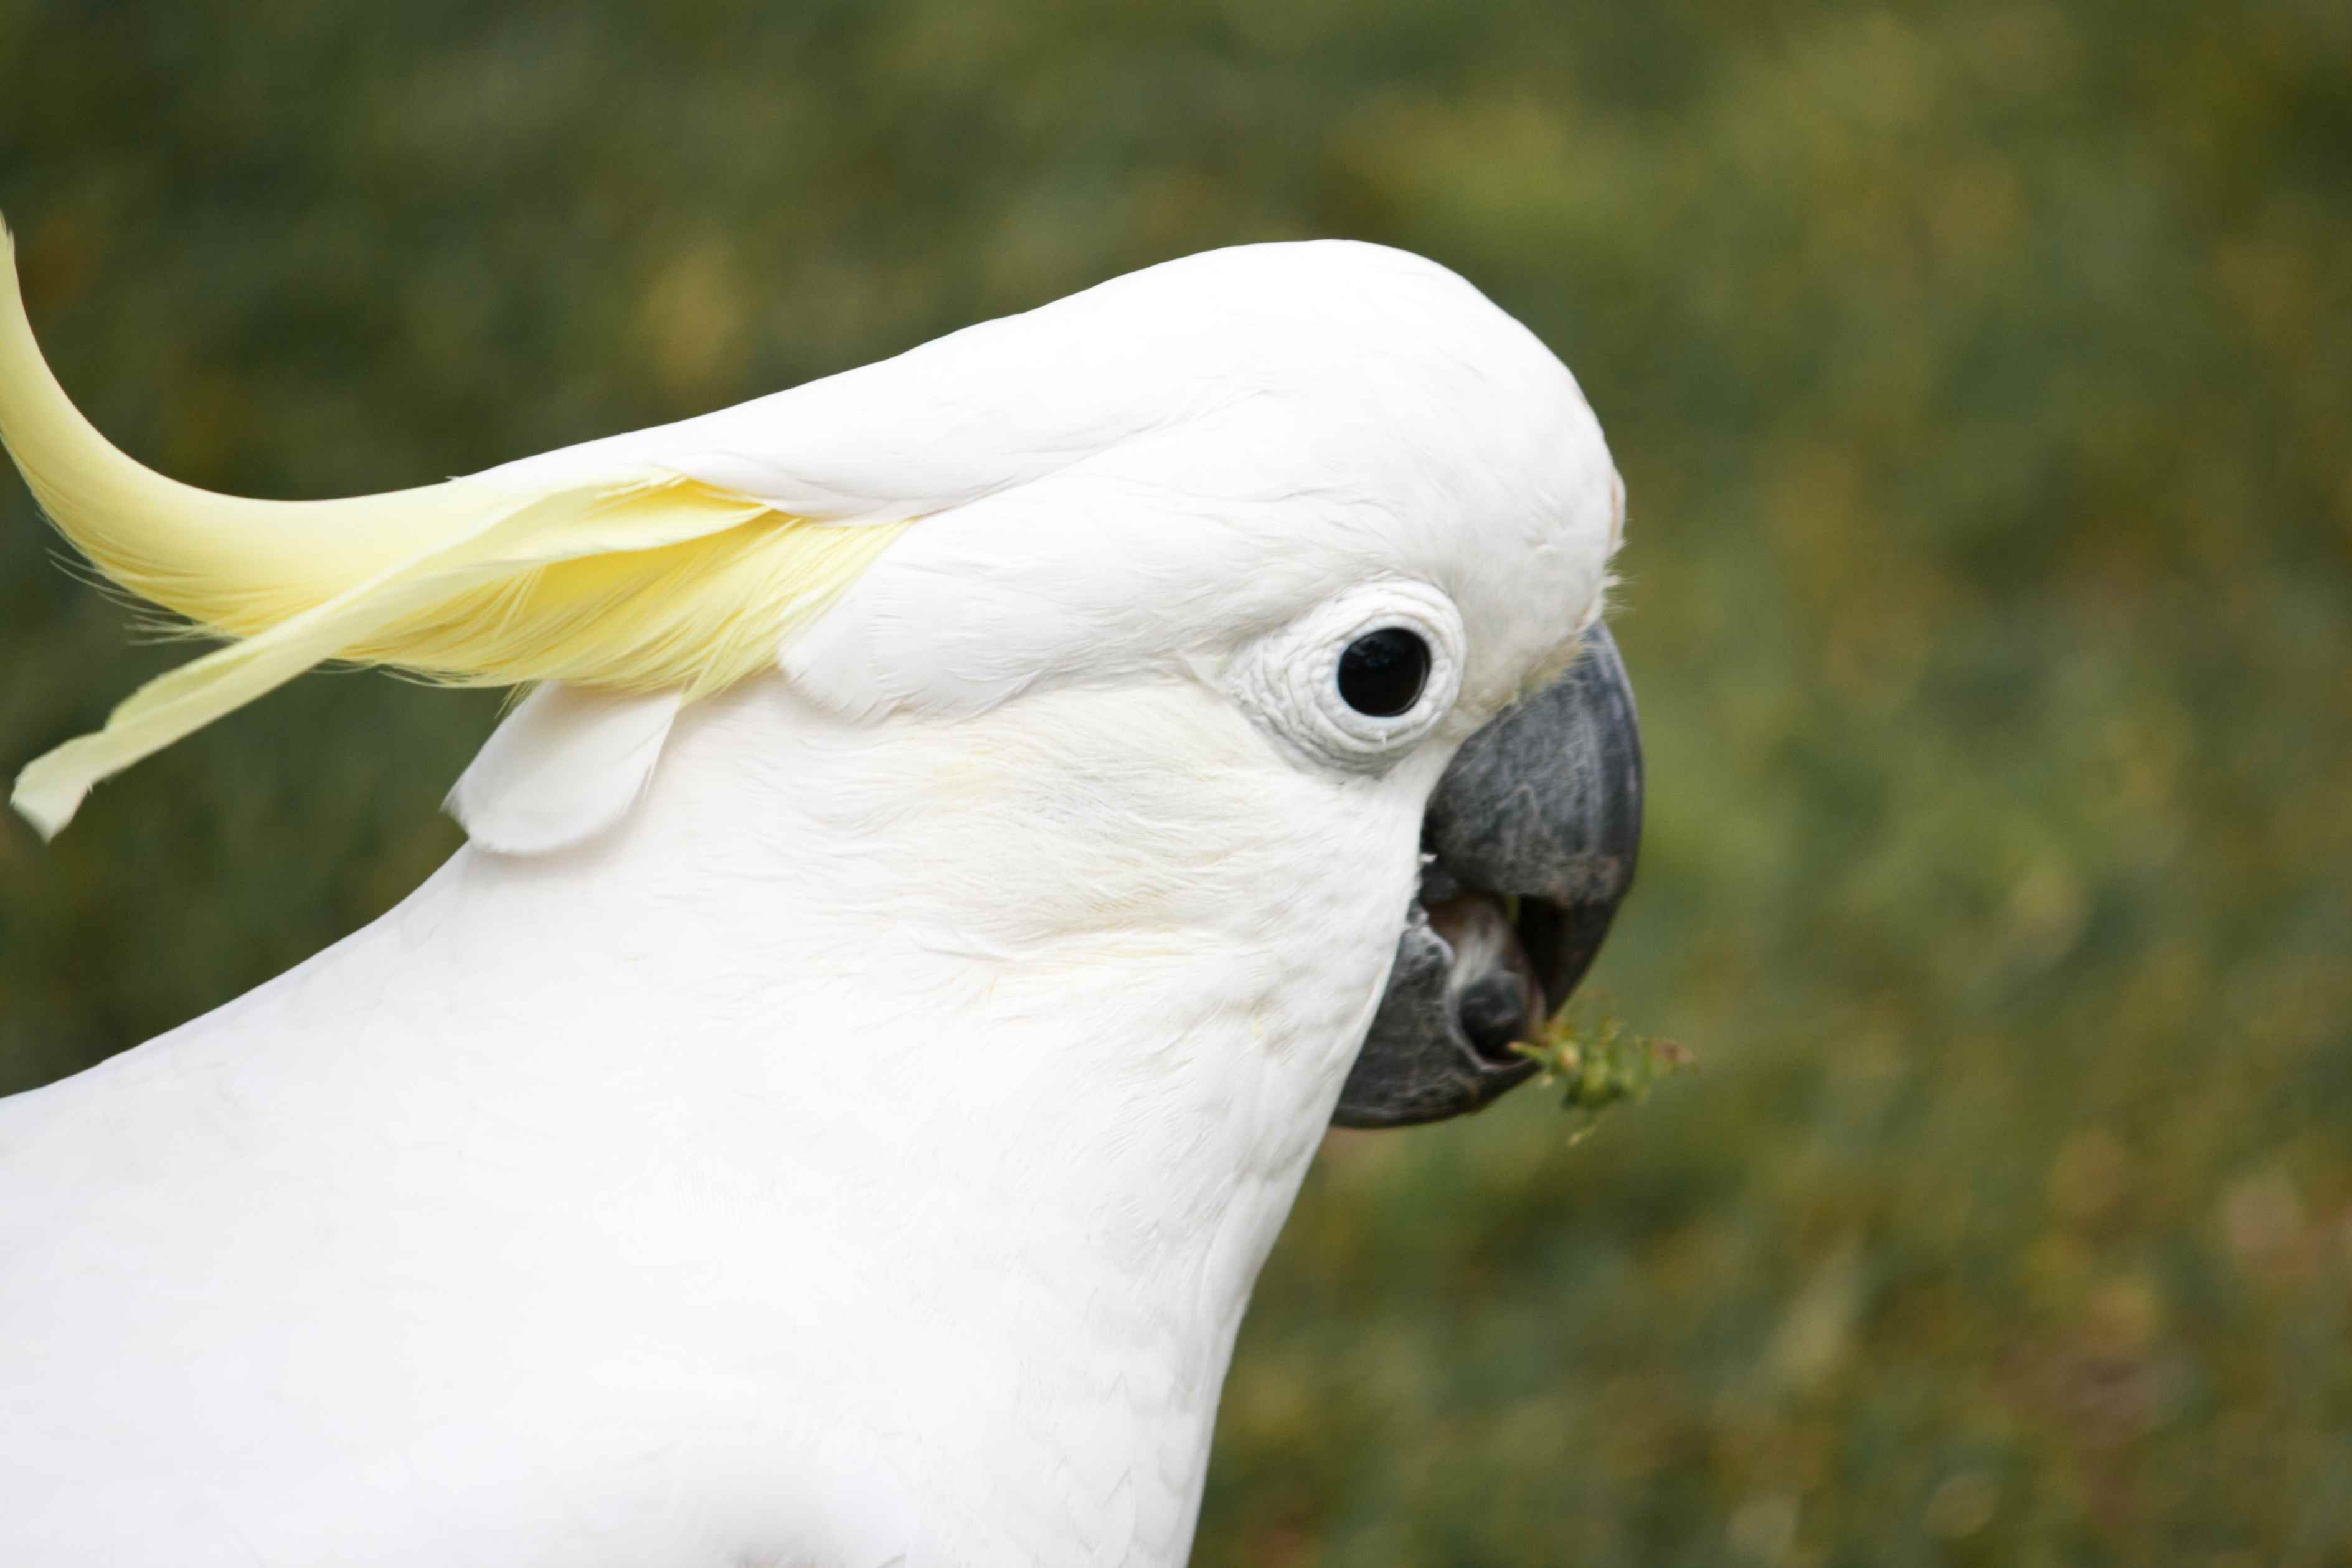 The face of a sulphur-crested cockatoo against a green background